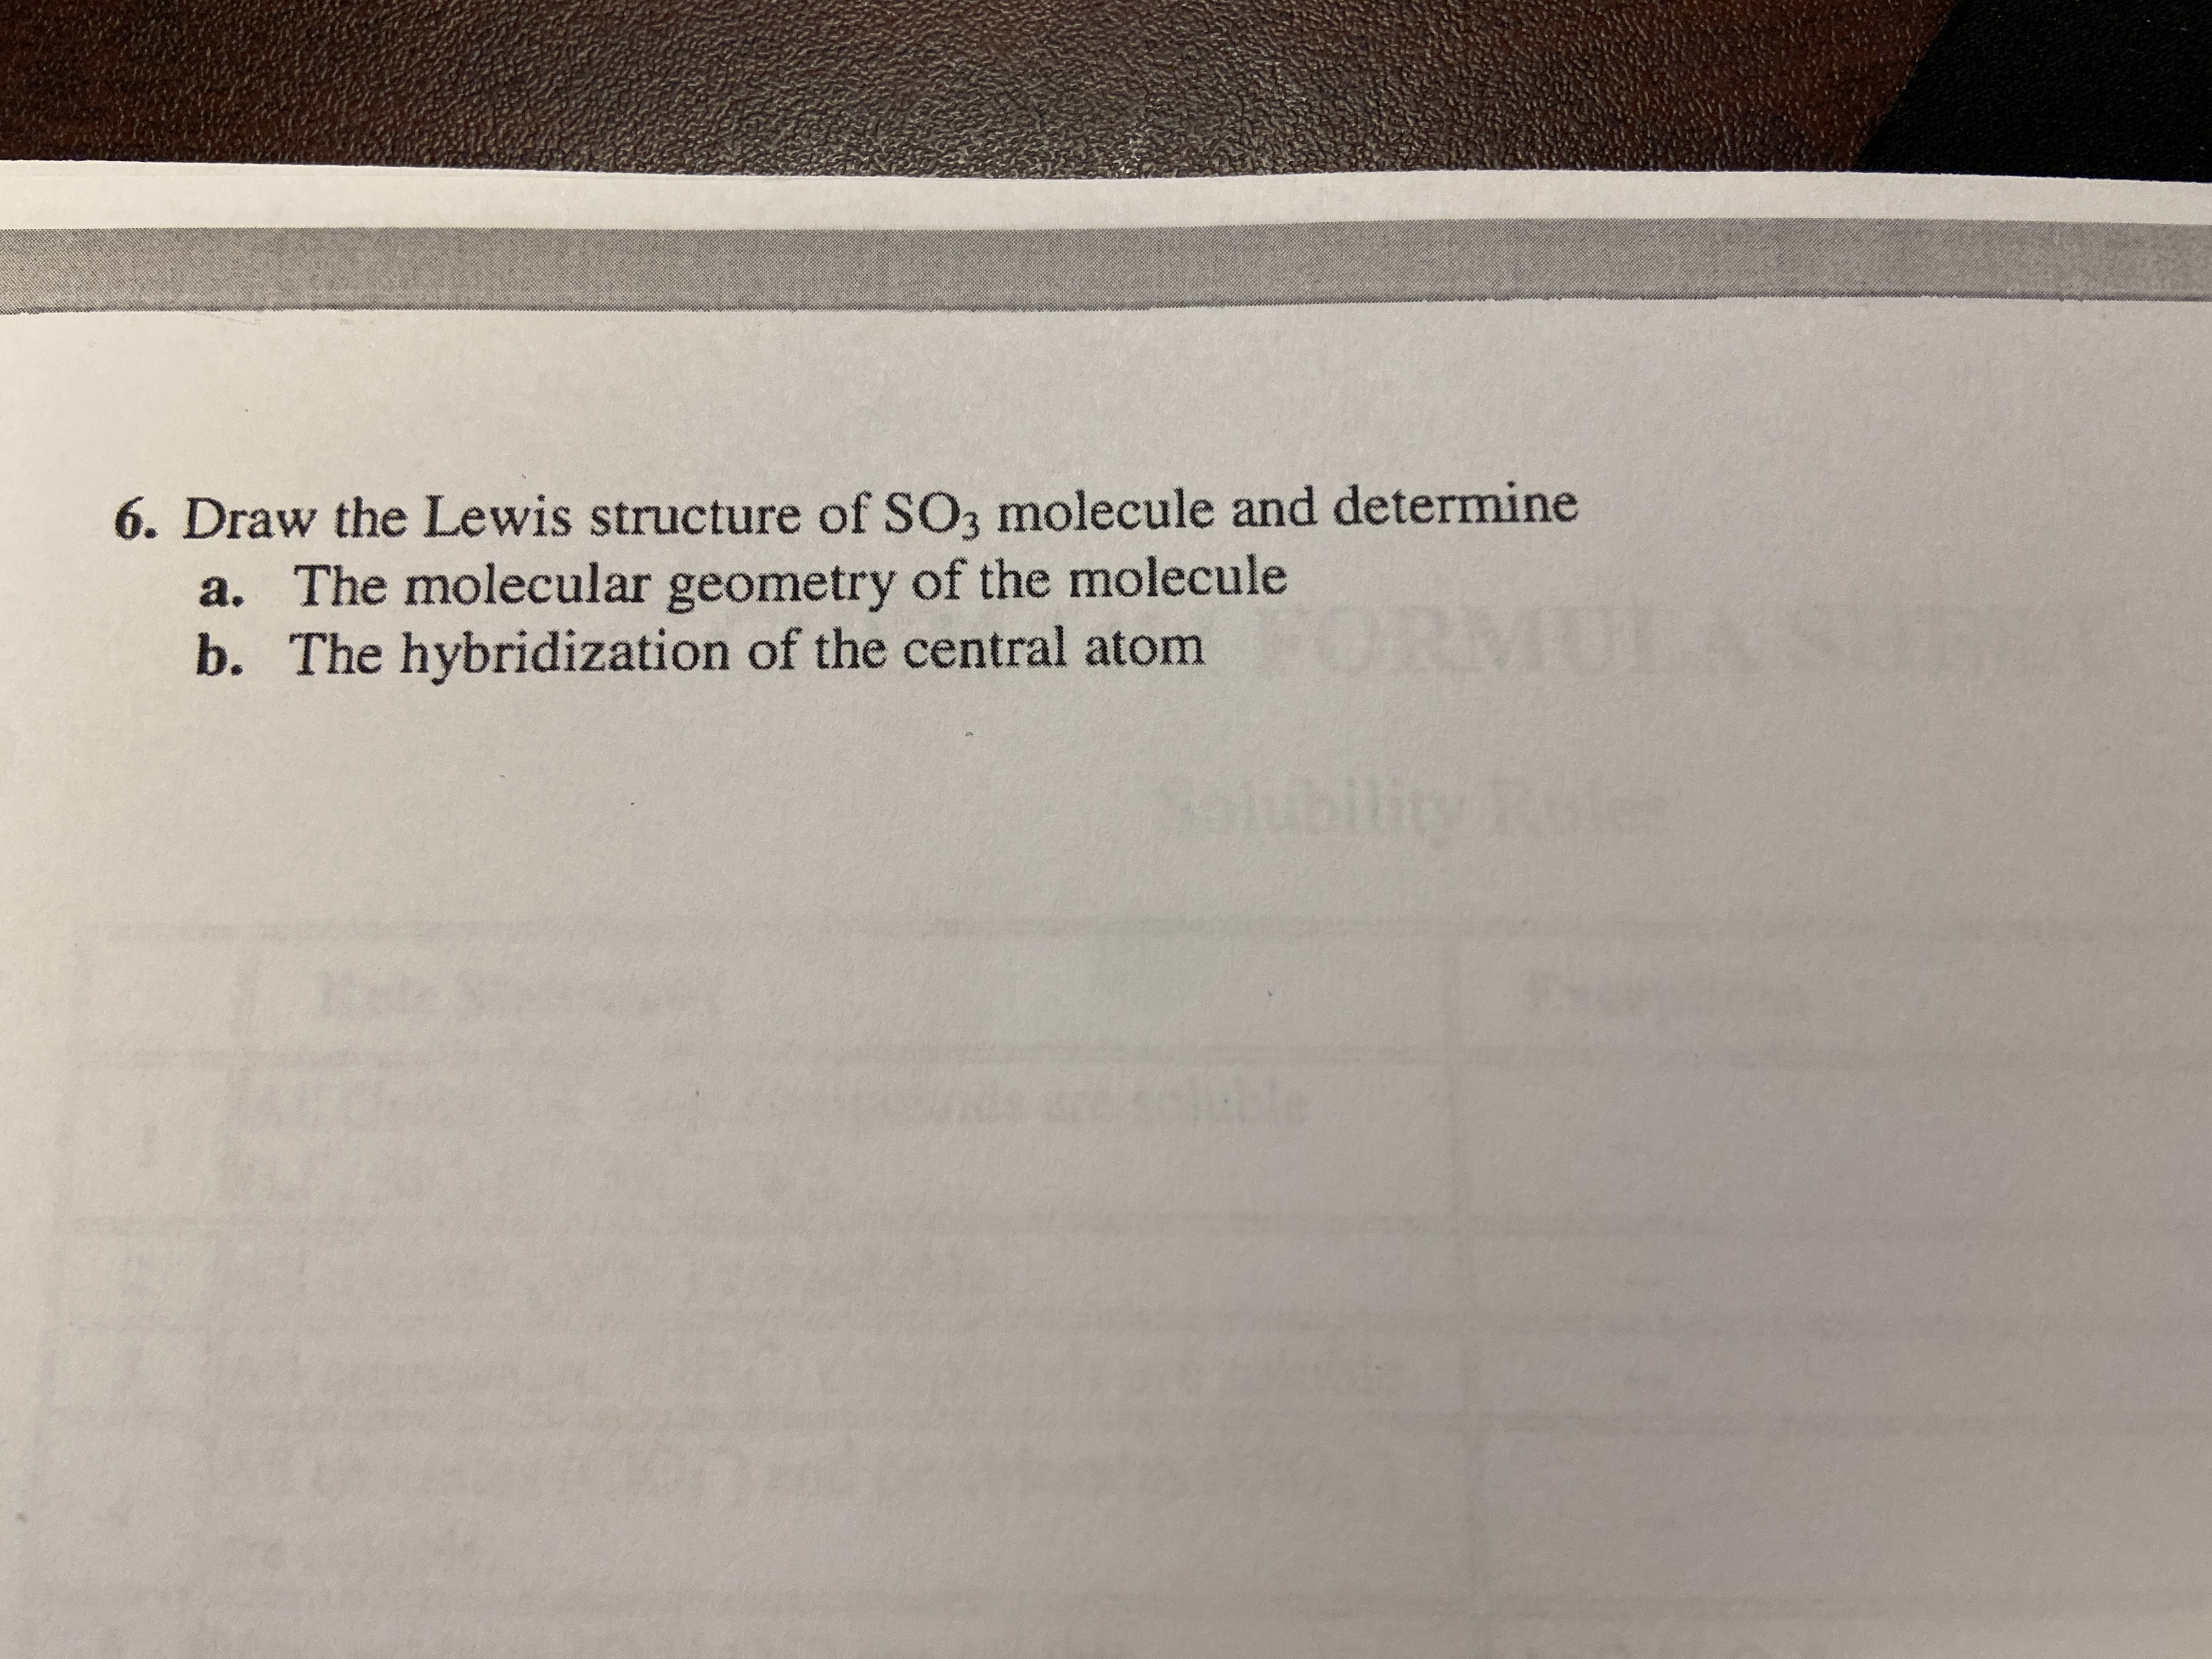 Answered 6 Draw The Lewis Structure Of So3